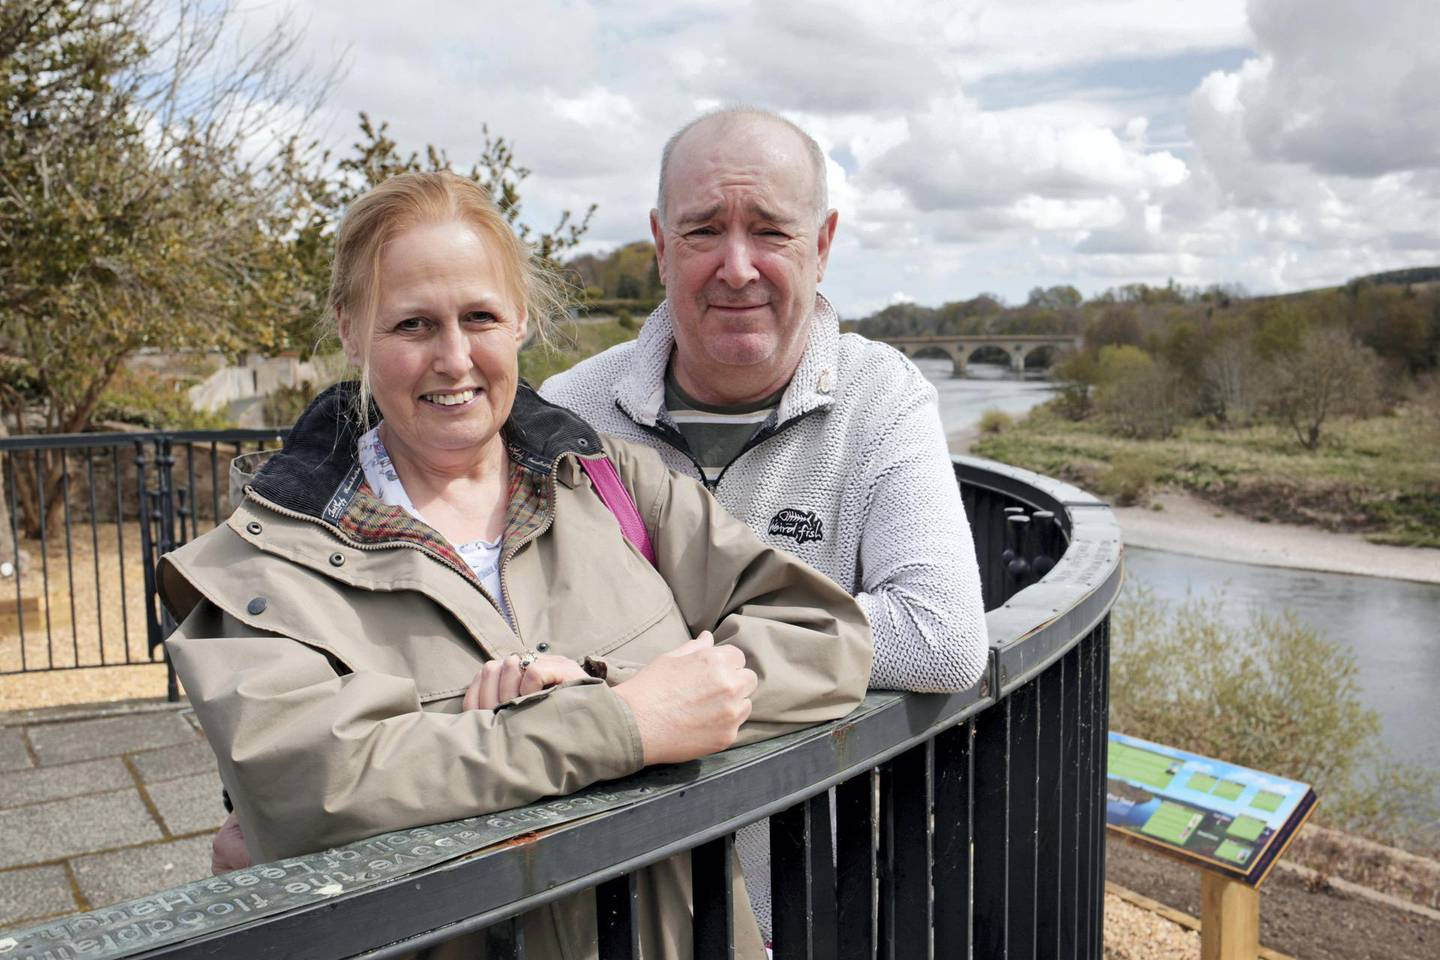 Mark and Hazel Stooker from Newcastle, in England, during a visit to Coldstream. Photograph: Stuart Boulton